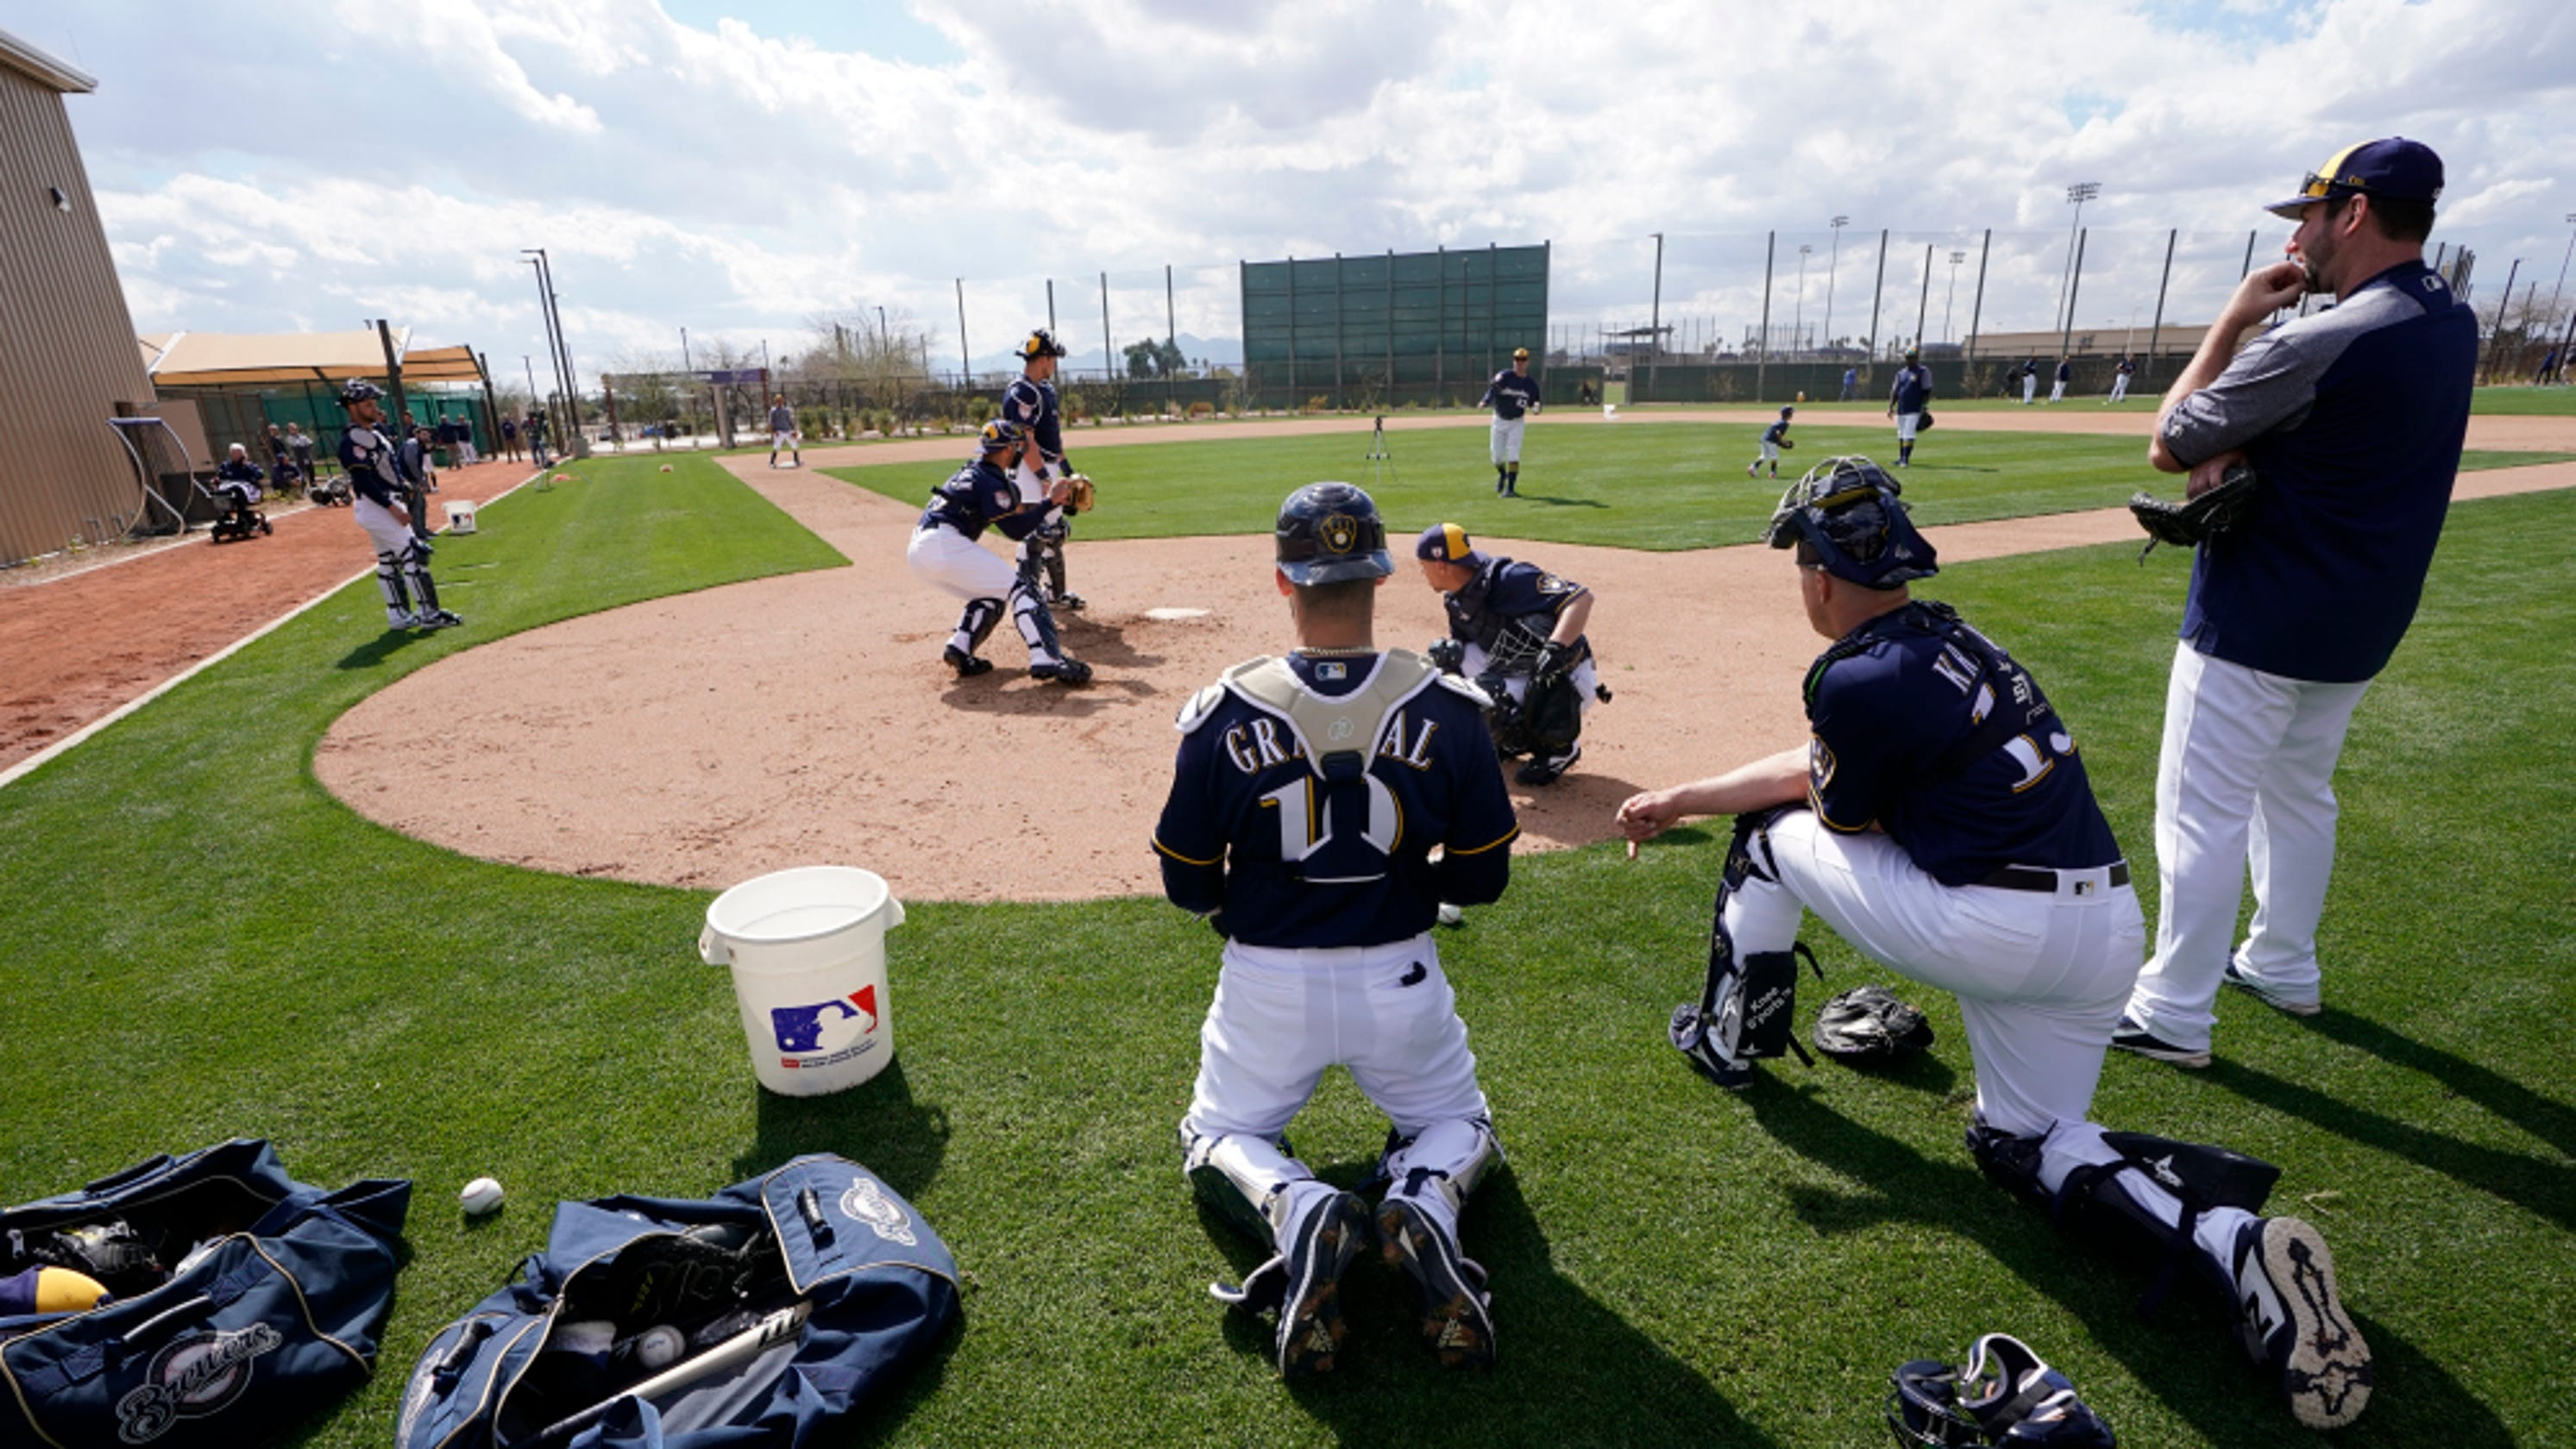 cb61e61dfd0cb MLB spring training  Teams need catchers. But they don t want to pay